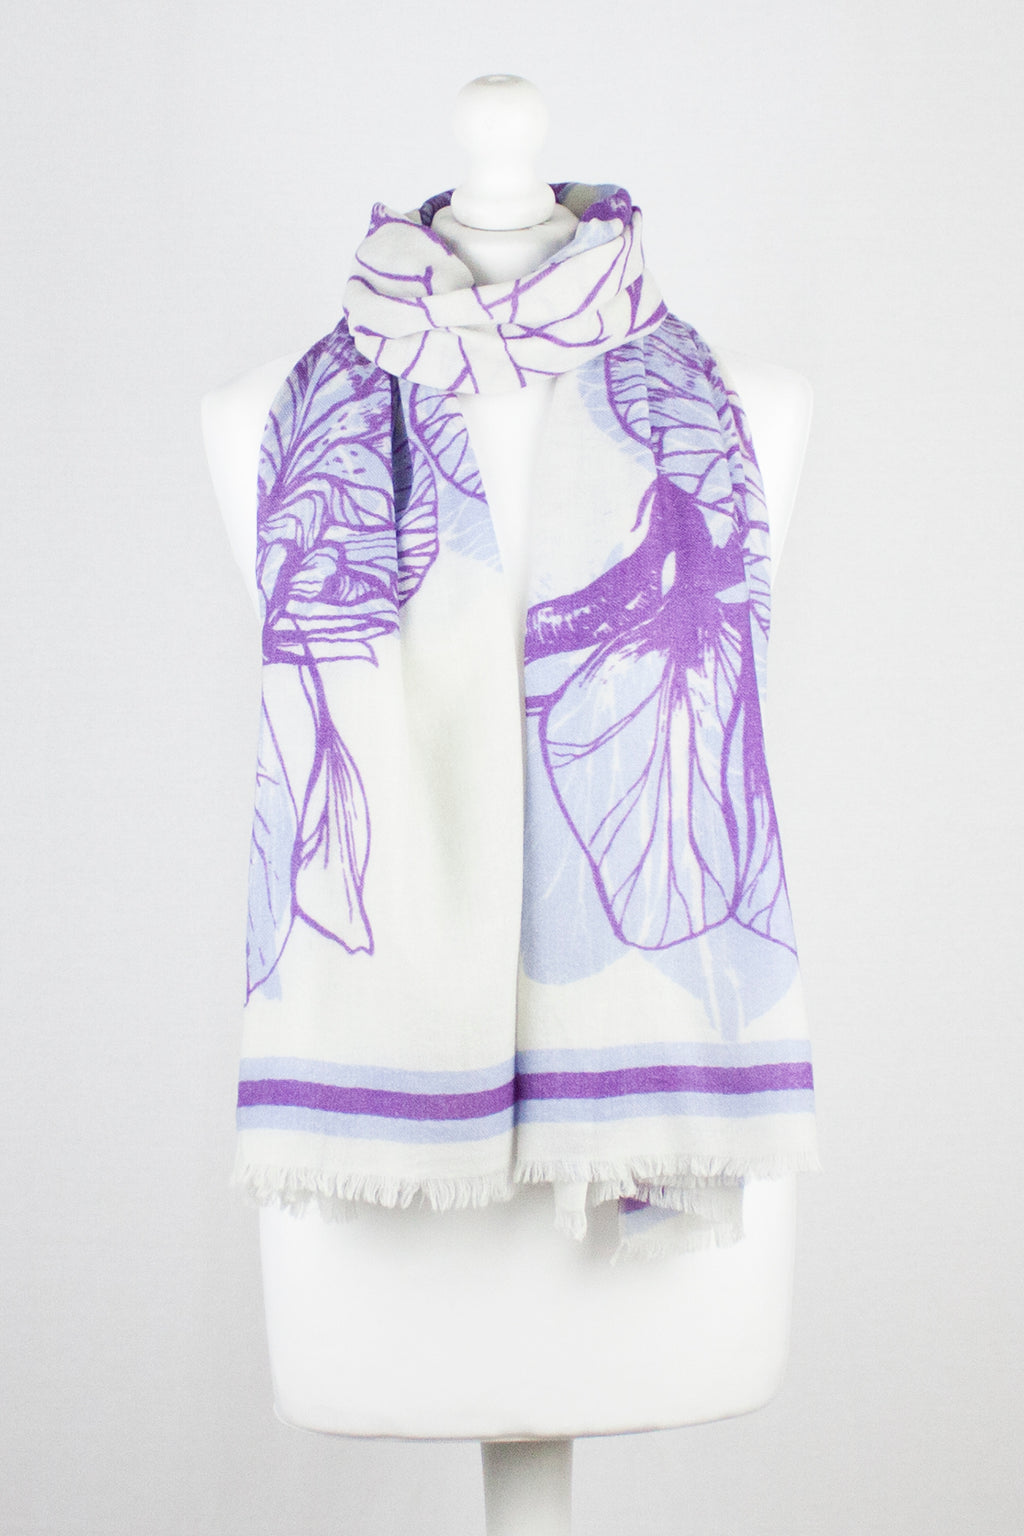 Cynthia Floral Print Merino Wool Scarf - Off White Violet